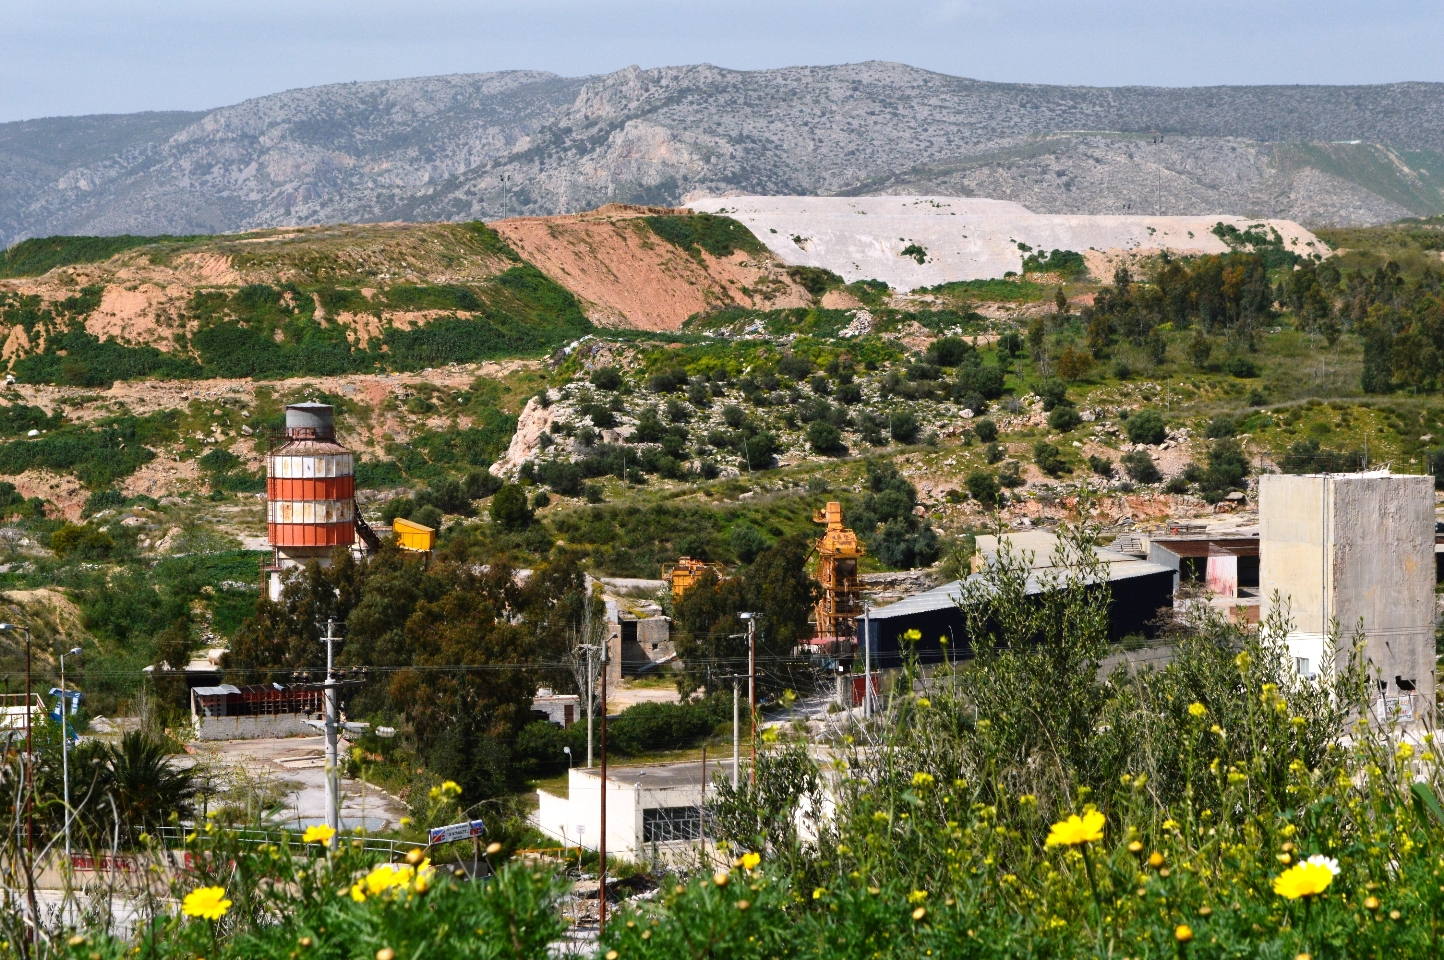 Ano-Liossia half restored dump as viewed from Egaleo Ring road, West Attica, Athens, Greece.